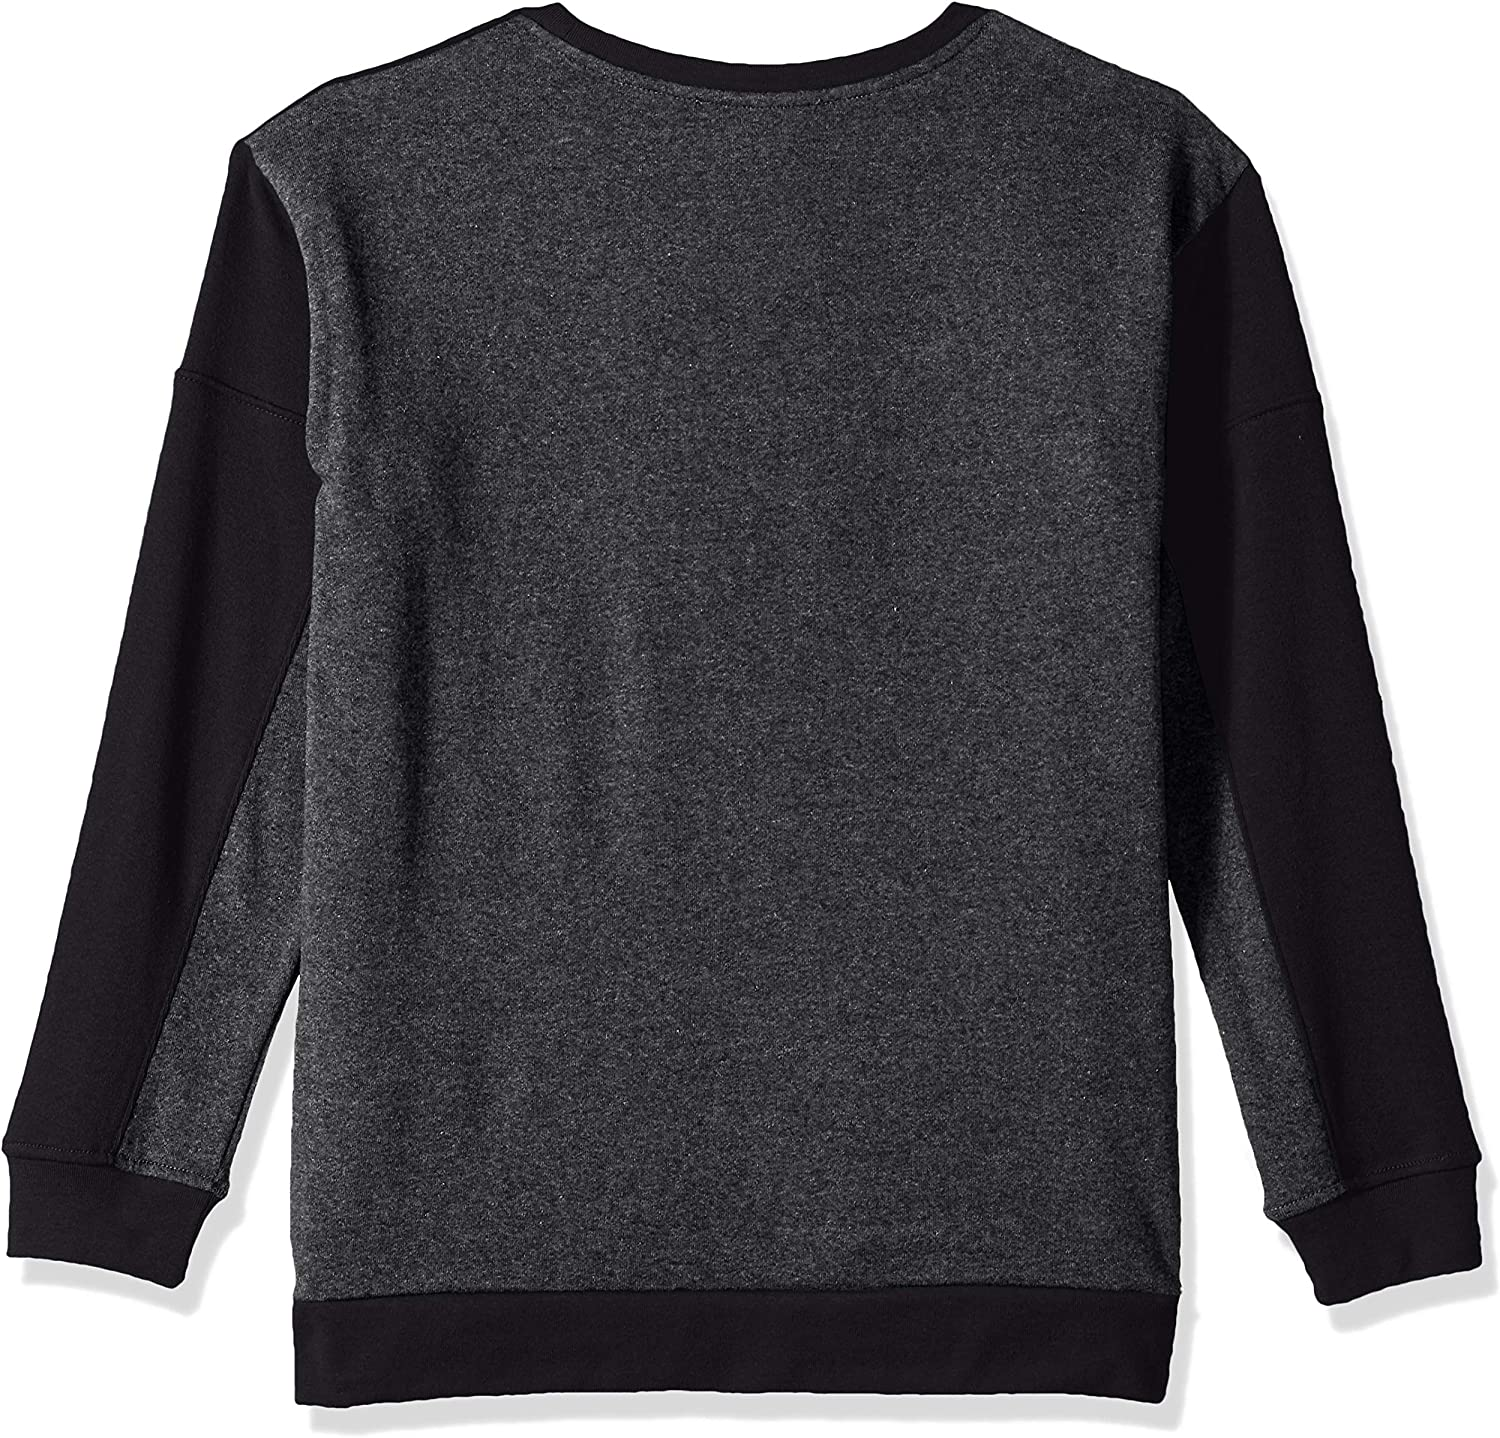 NBA by Outerstuff Womens in The Mix Long Sleeve Crew Top